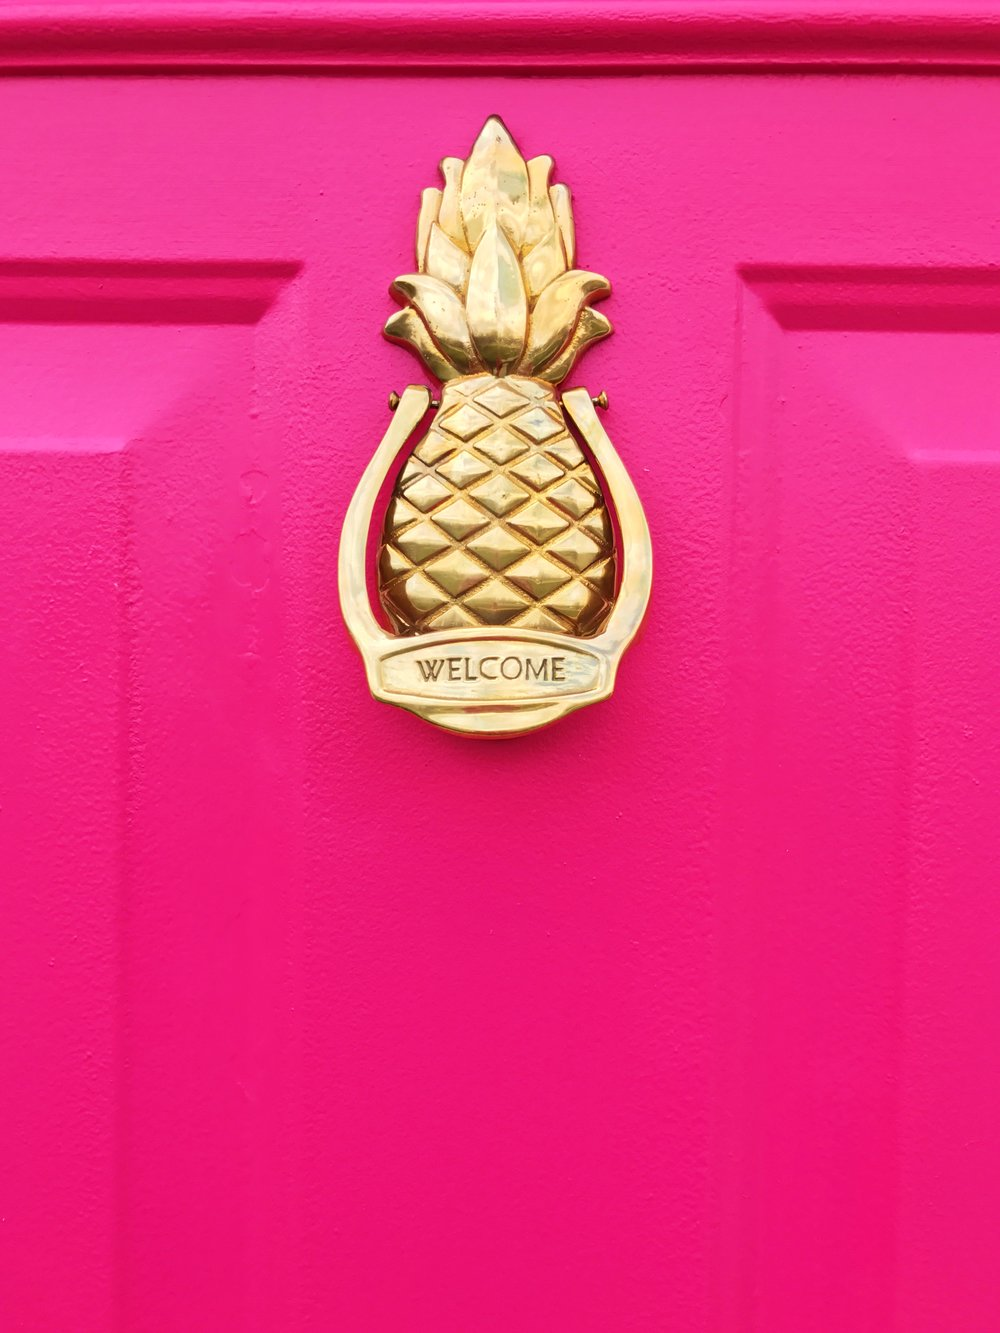 Hot Pink Door with Pineapple Door Knocker. The vintage pineapple door knocker was made my Avon. This door looks amazing after a few coats of Behr Exterior Paint In Pagoda. See the before and after at ericahammer.com